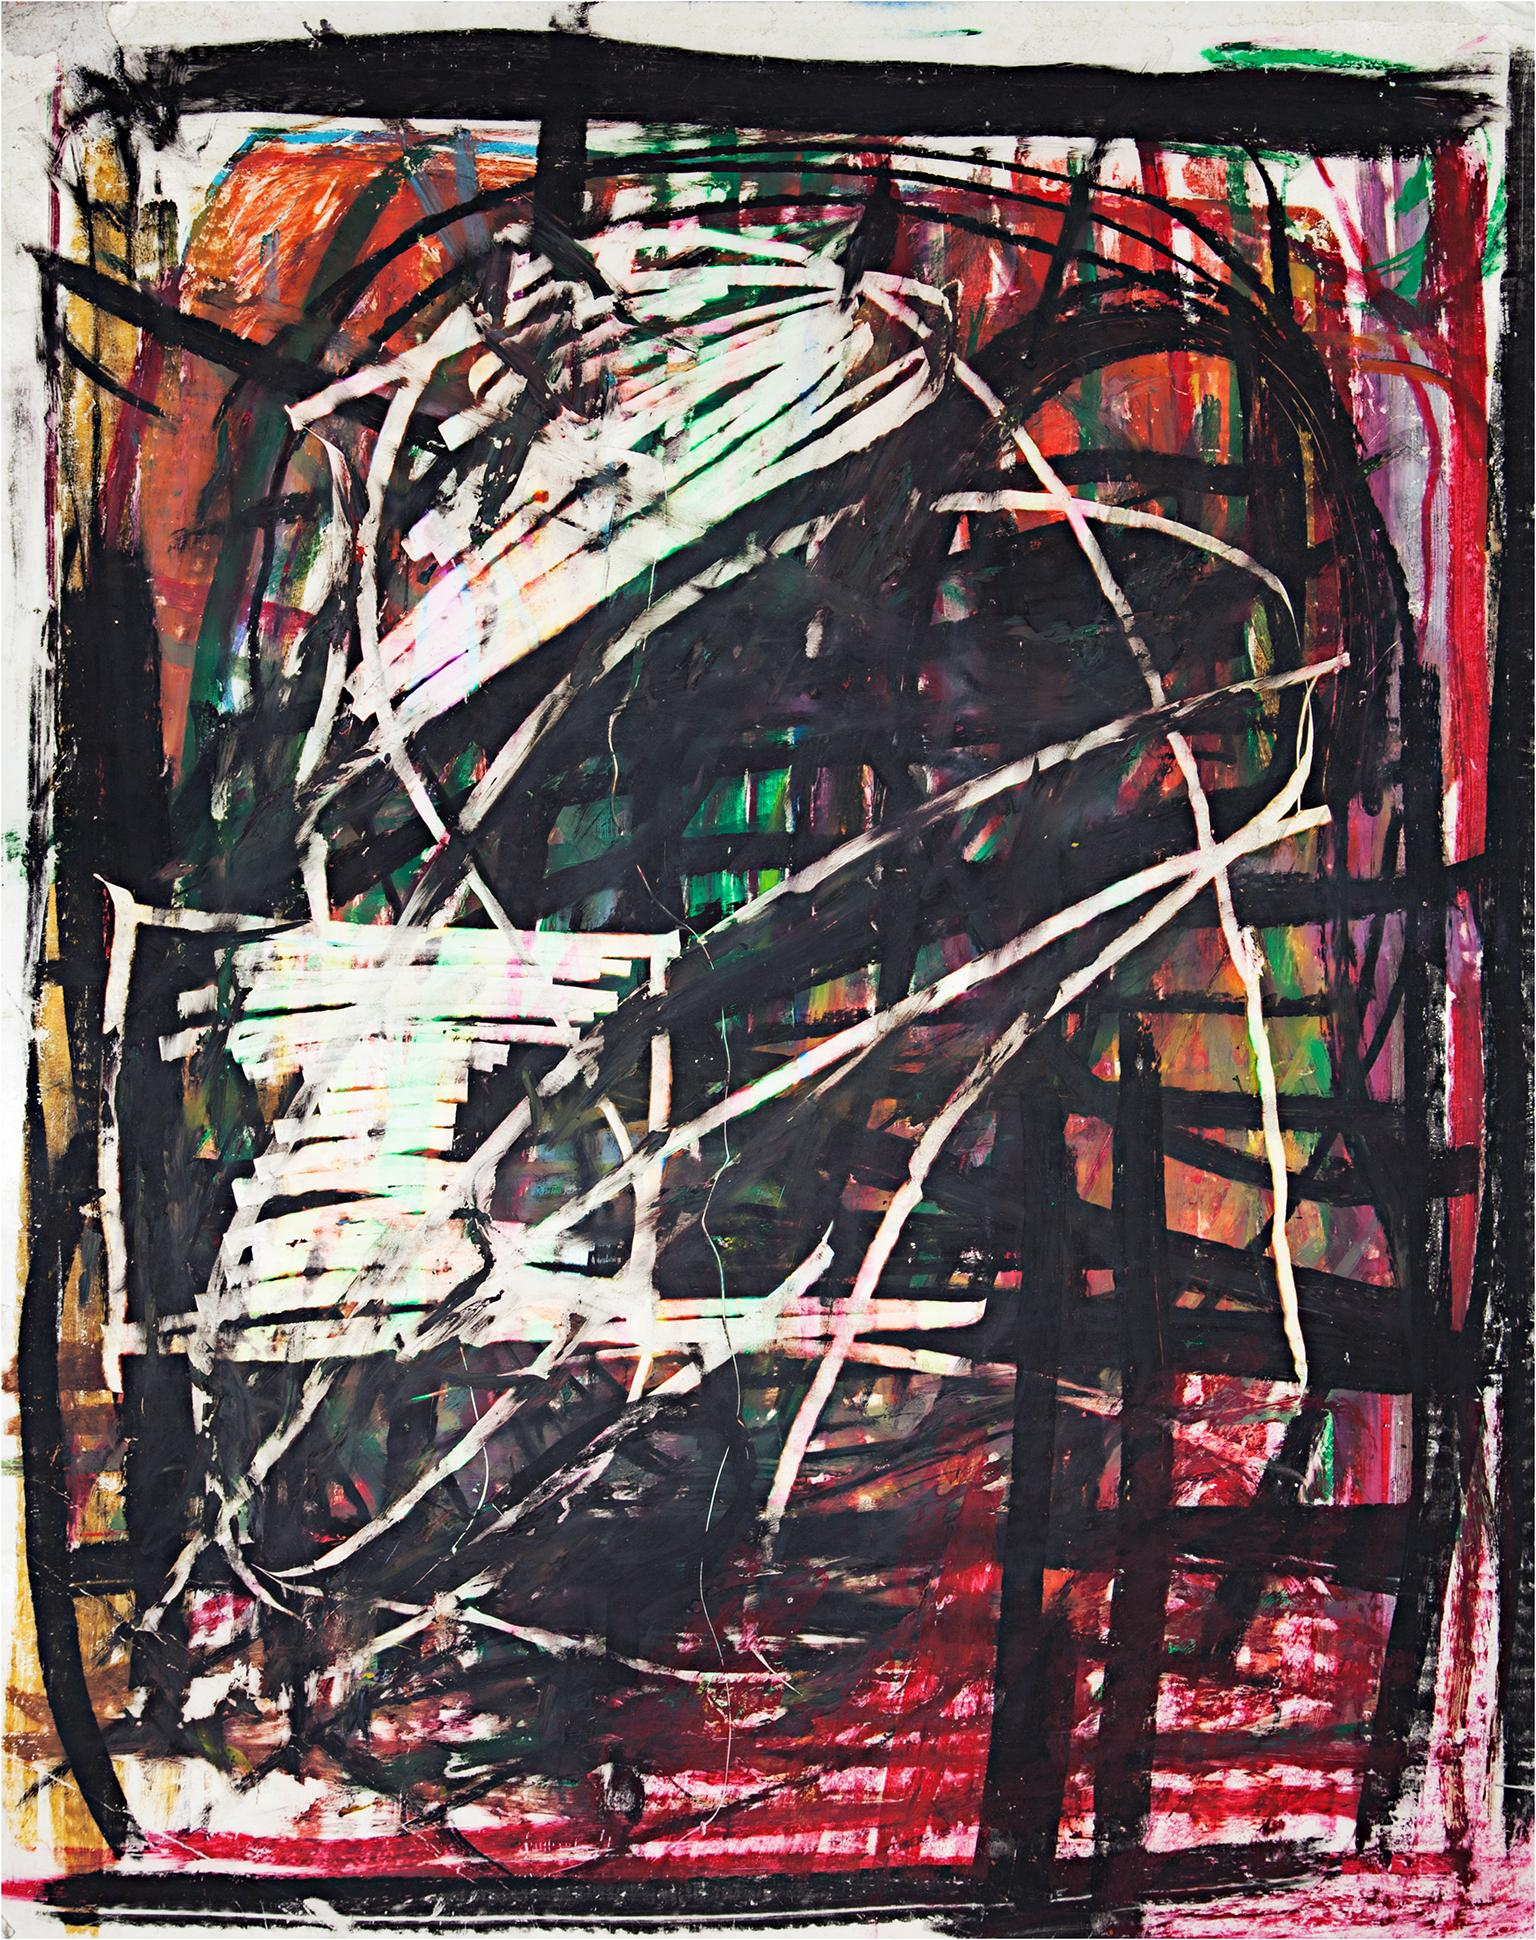 """""""I Need Her Badly Now,"""" Abstract Gestural Pastel on Paper by Reginald K. Gee"""